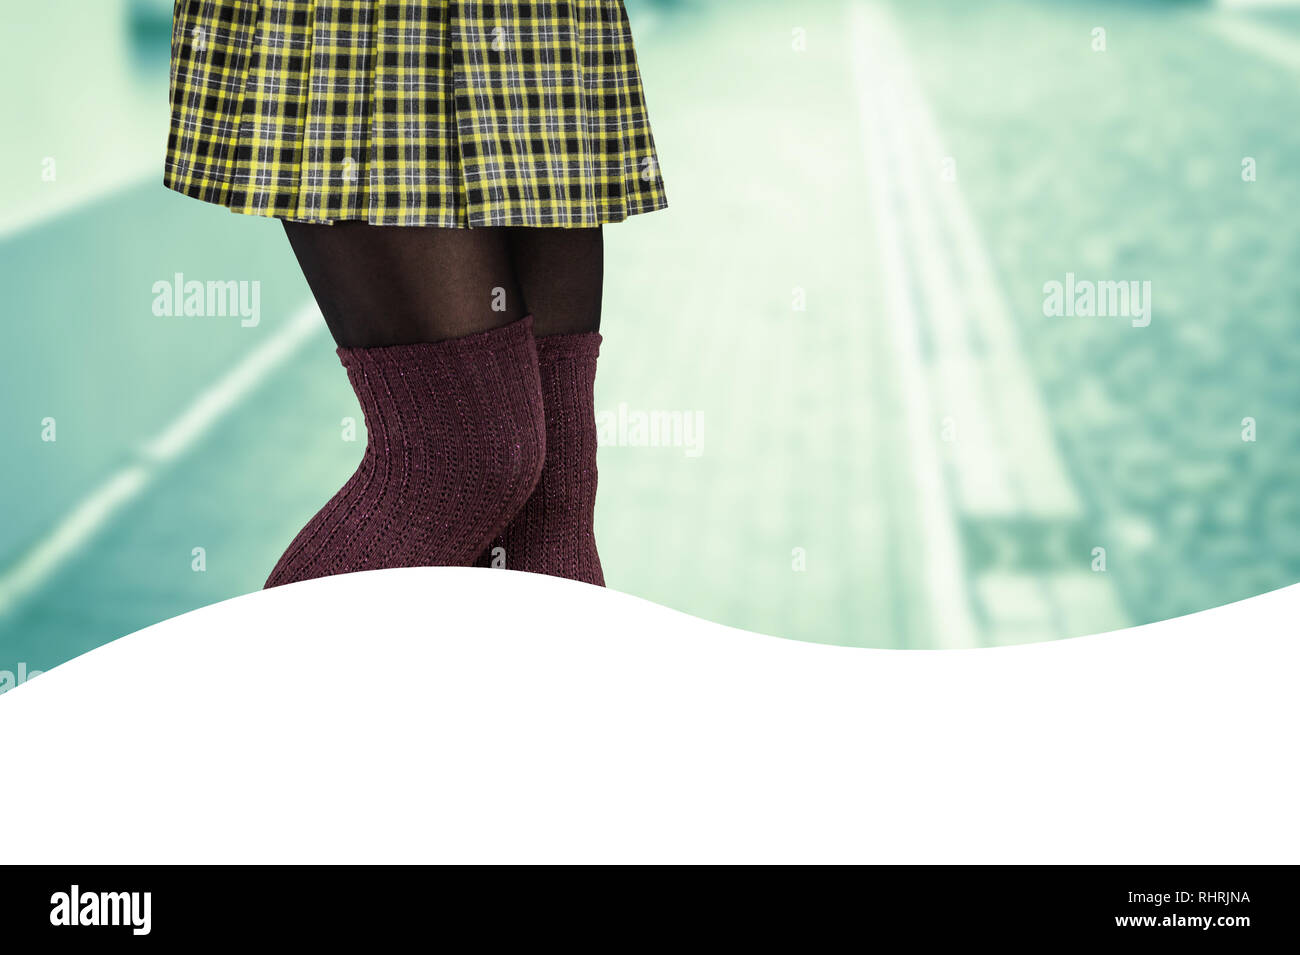 d8a8b64585d Woman with beautiful legs wearing mini skirt and knee high socks - Stock  Image